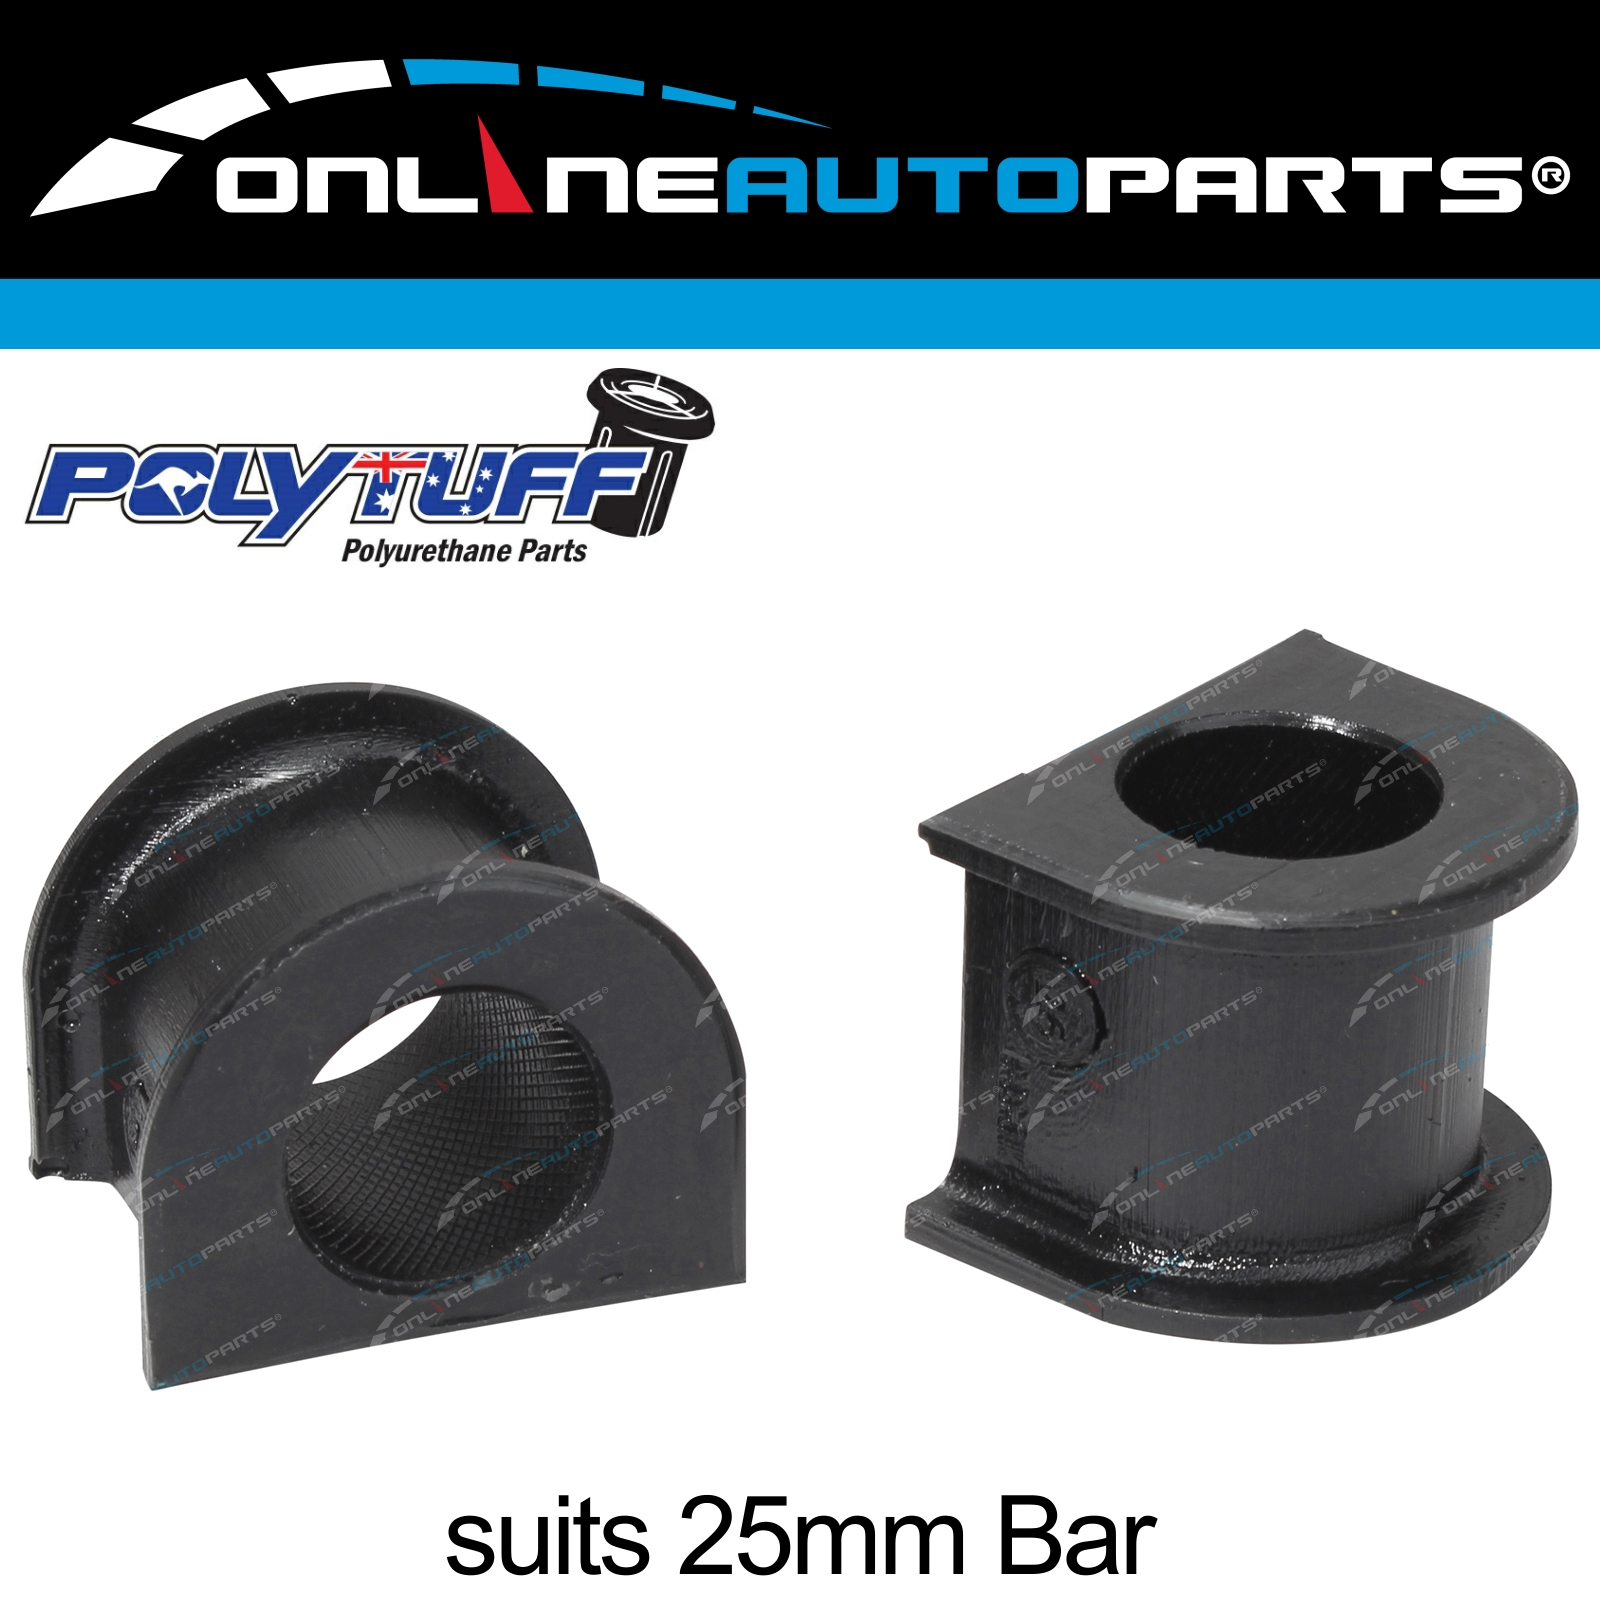 26mm Rubber Sway Bar bush front fits Toyota LandCruiser 80 series